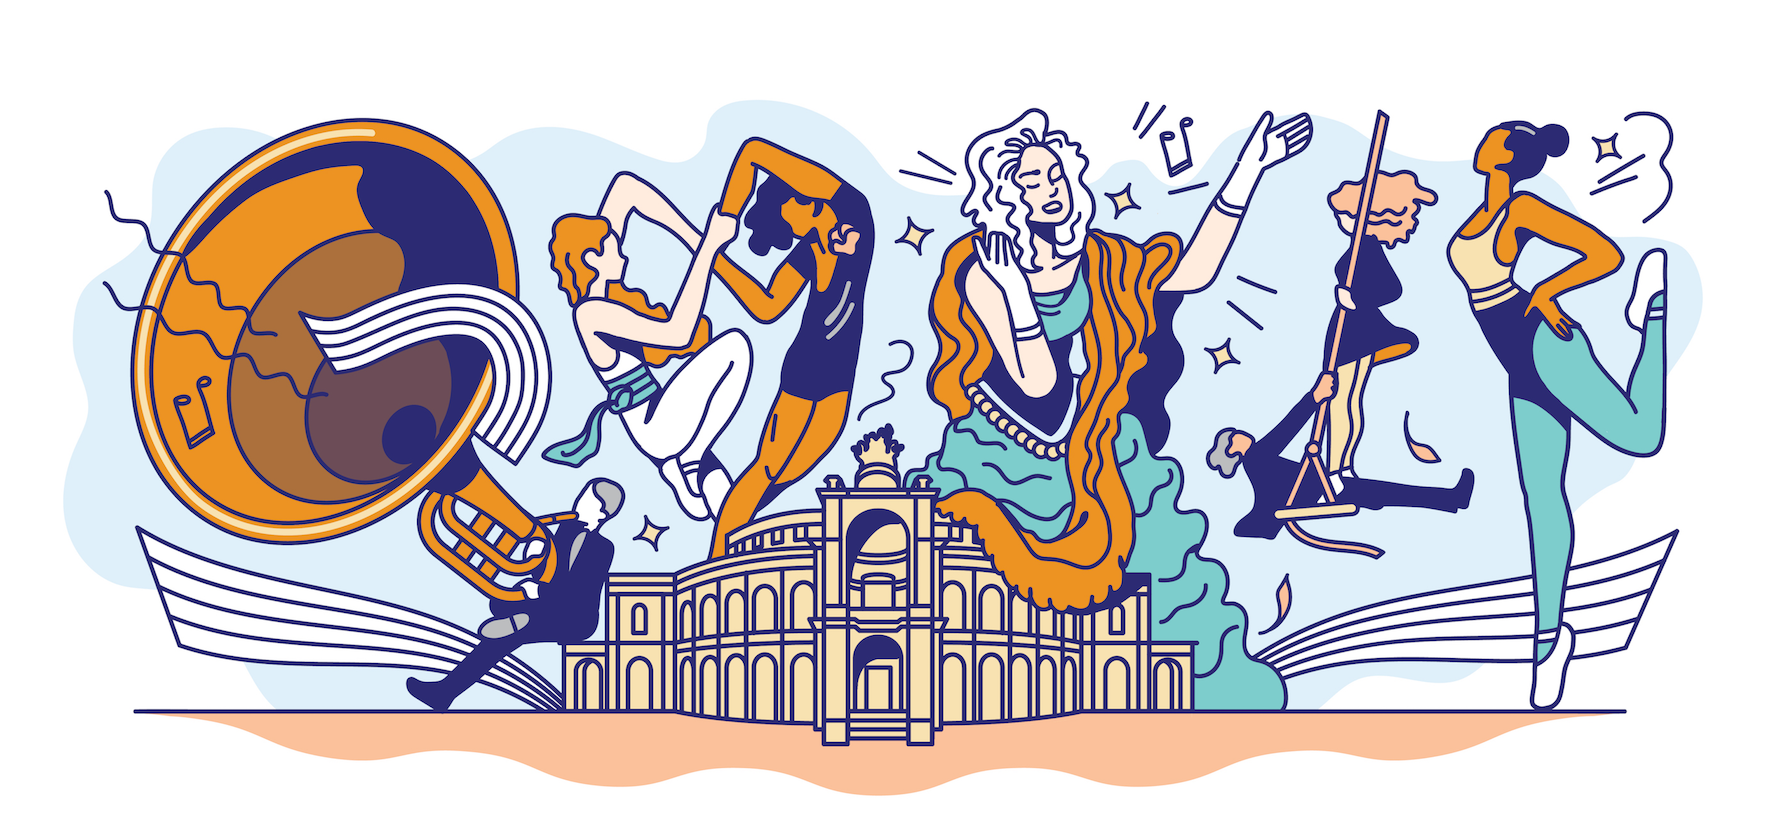 Google Doodle celebrating the 177th anniversary of the Semper opera in Dresden